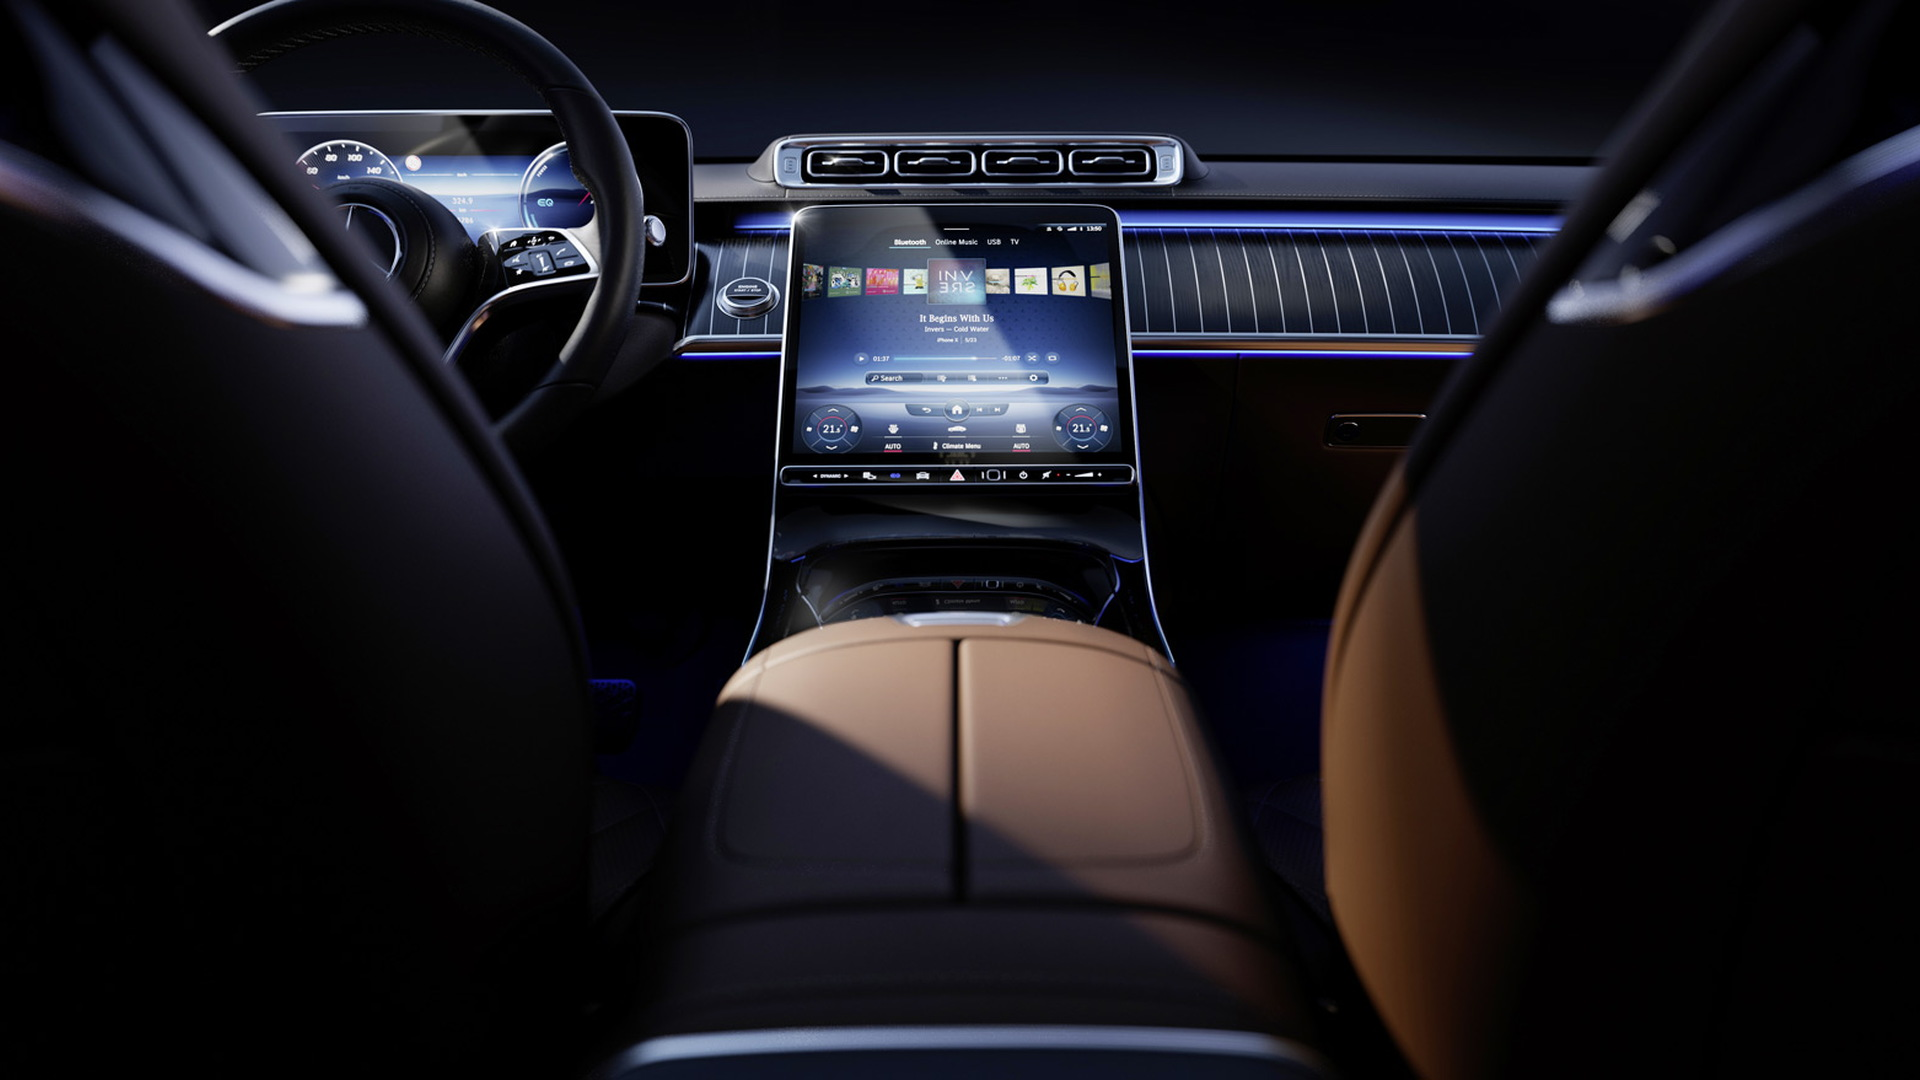 New Mercedes-Benz S-Class' interior